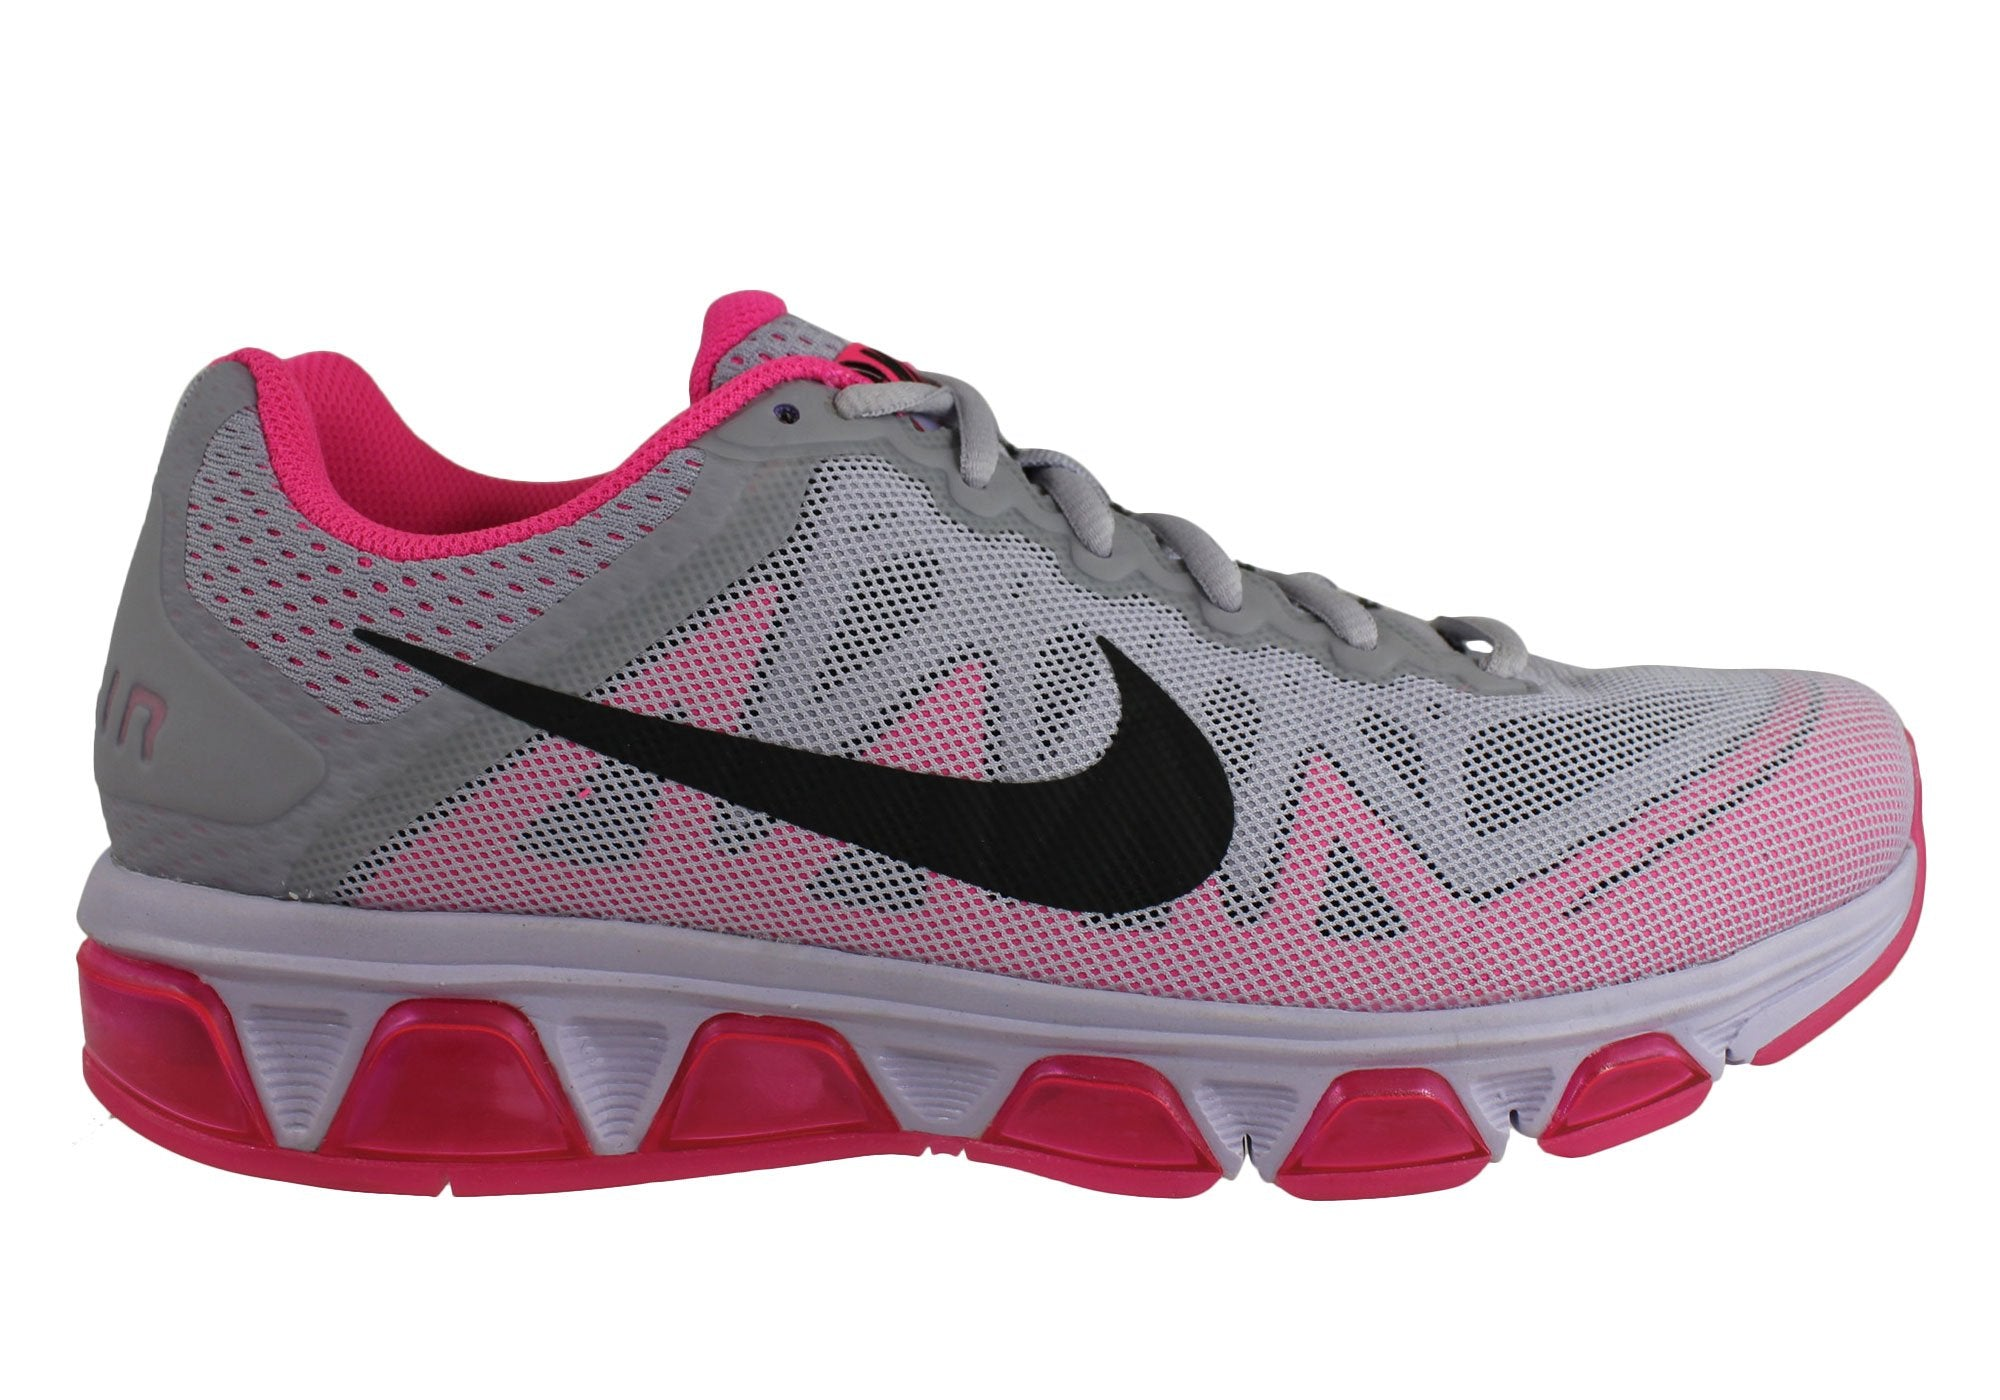 Air Max Excellerate 3 : Cheap Nike Shoes for sale online